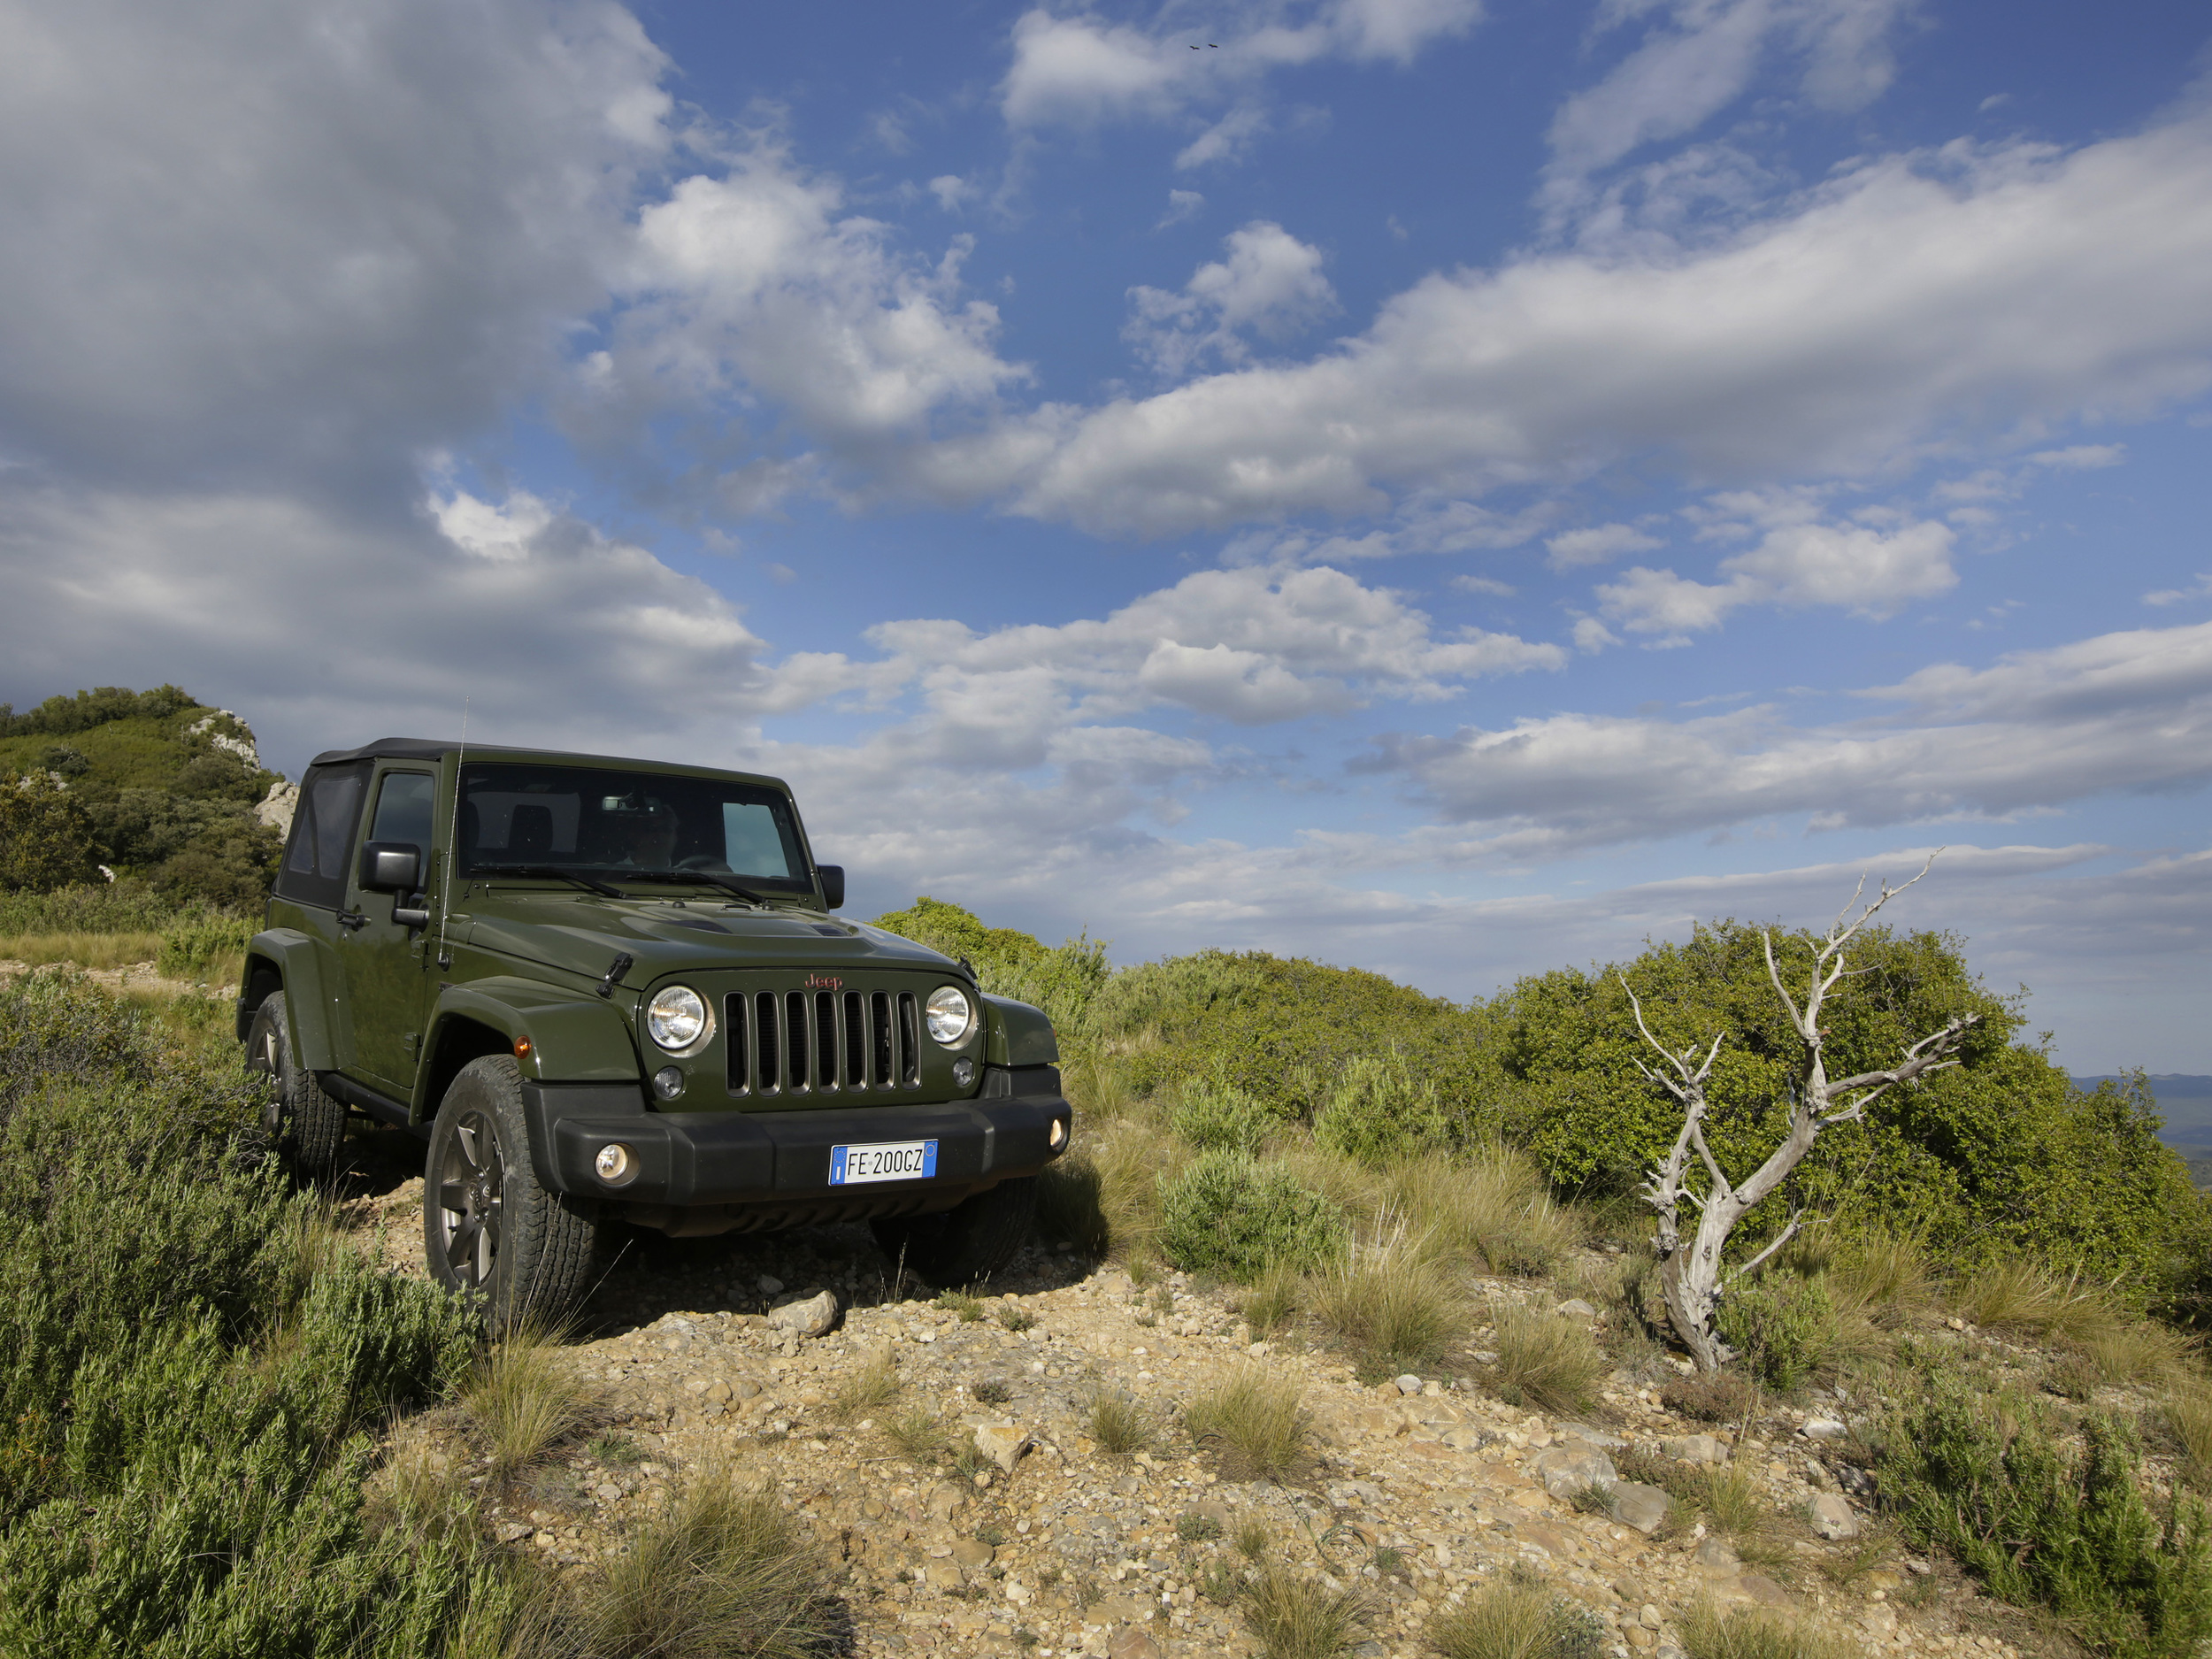 160621_Jeep_75th-Anniversary-series_07.jpg